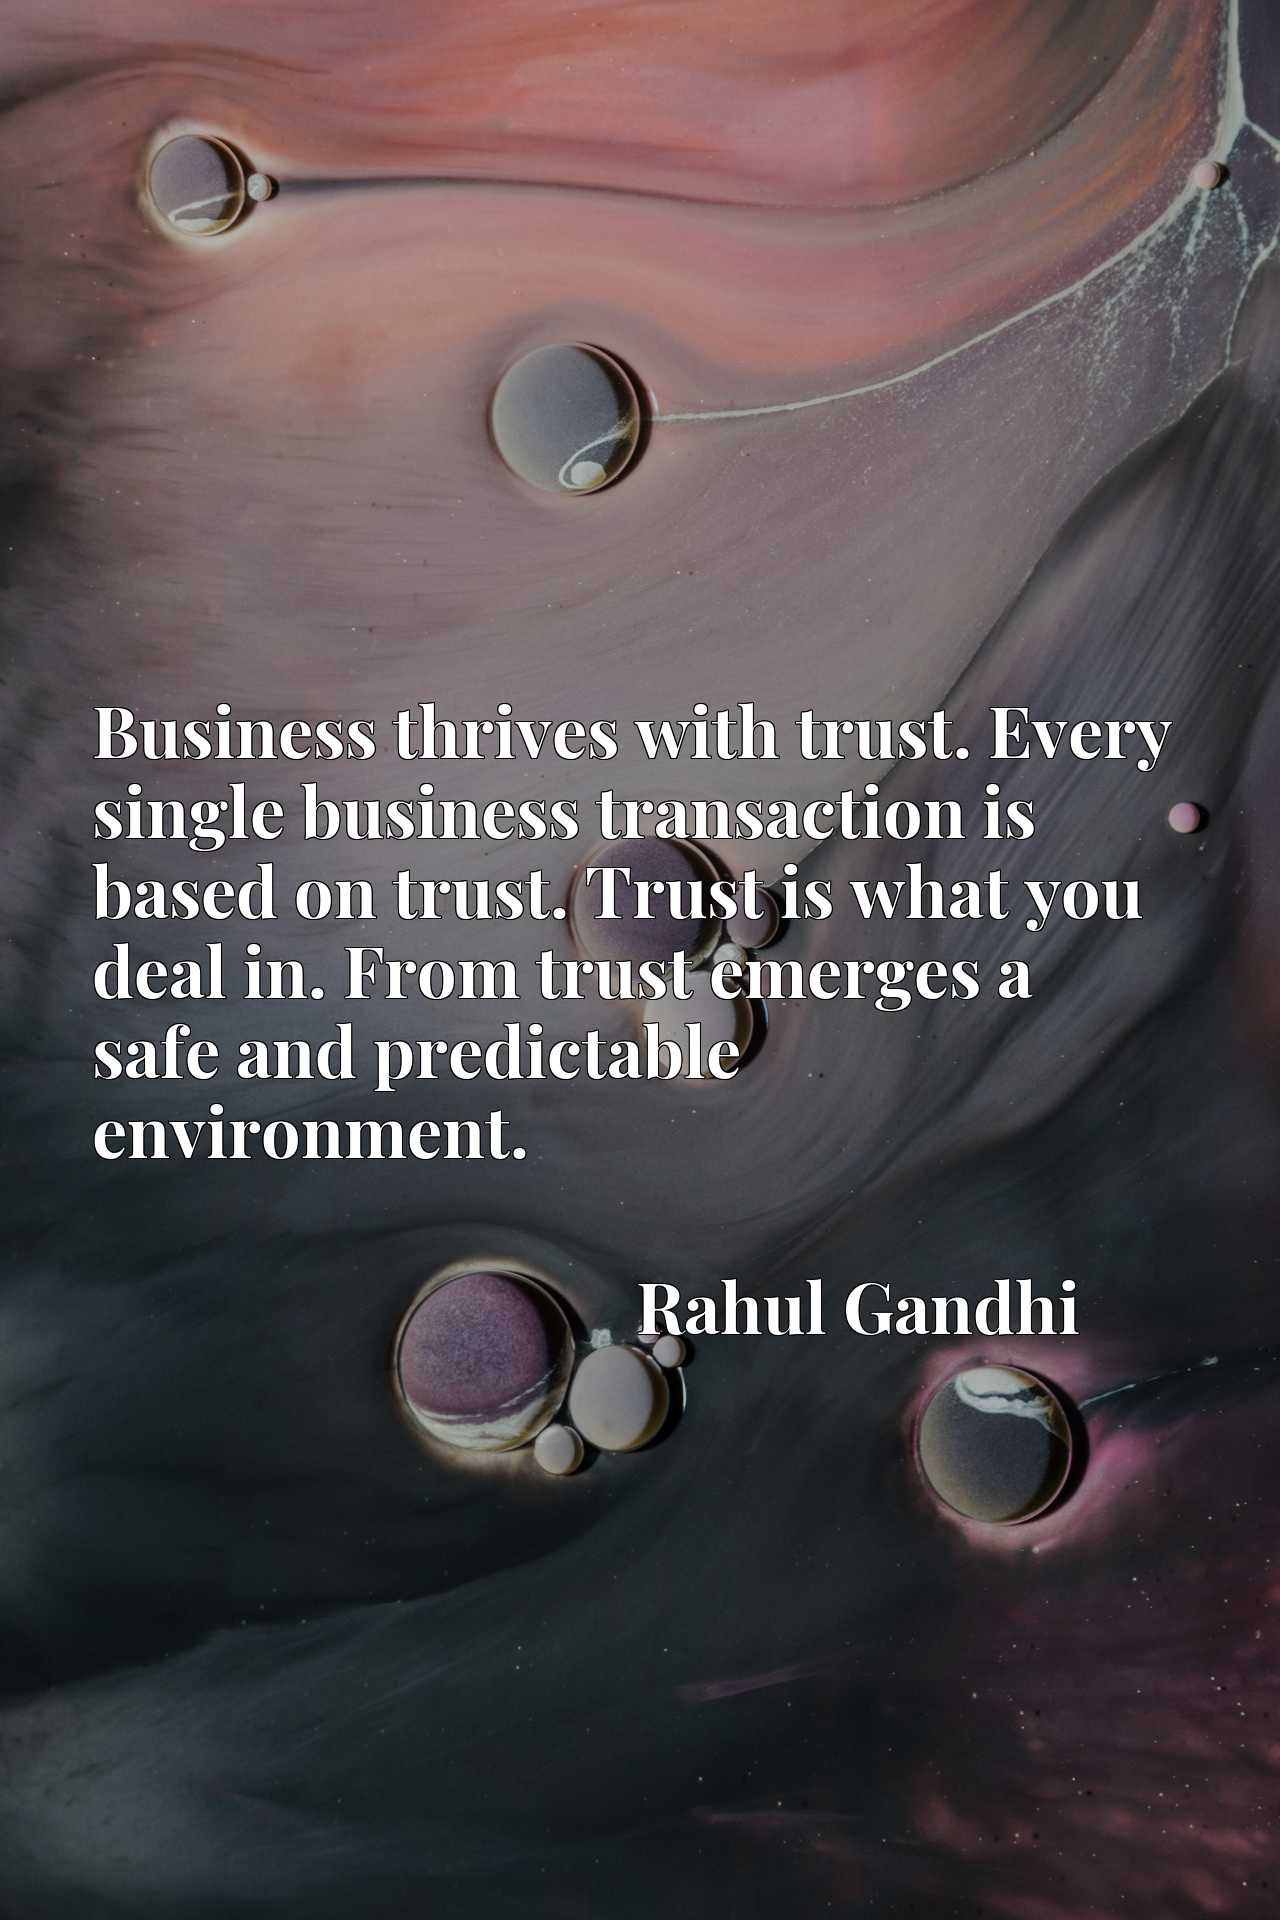 Business thrives with trust. Every single business transaction is based on trust. Trust is what you deal in. From trust emerges a safe and predictable environment.